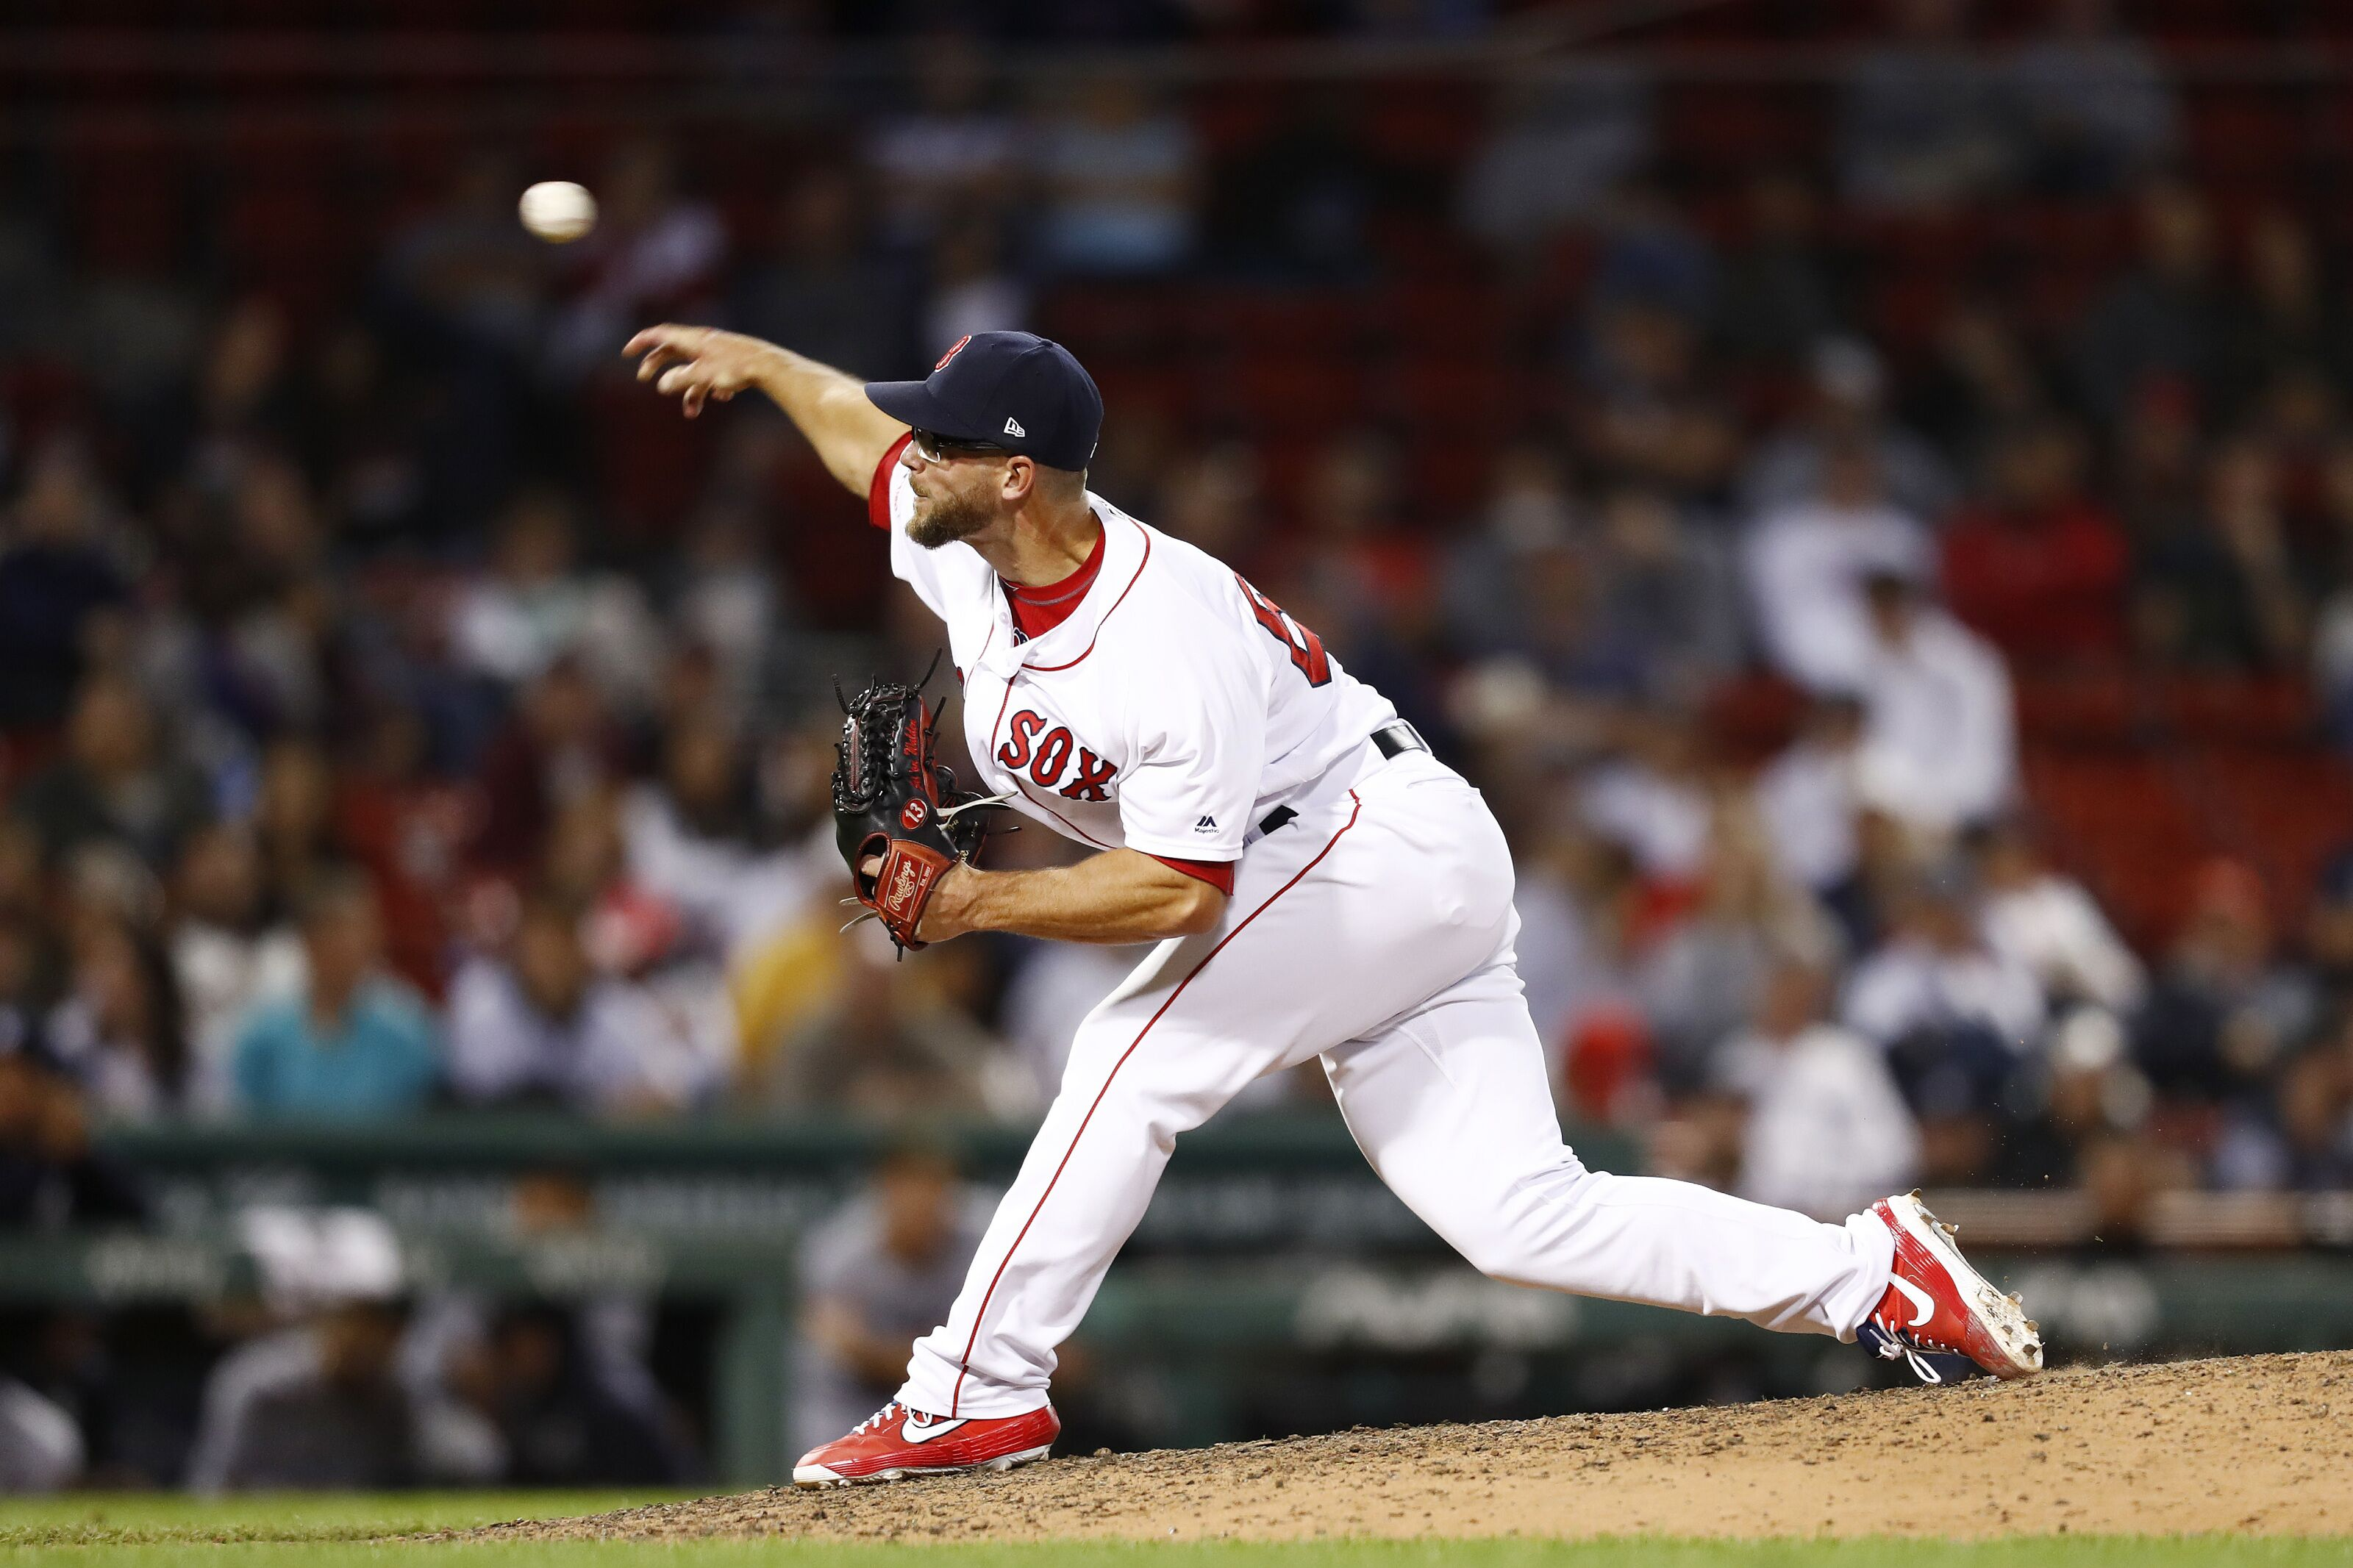 Red Sox 2019 Report Cards: Relief Pitcher Marcus Walden